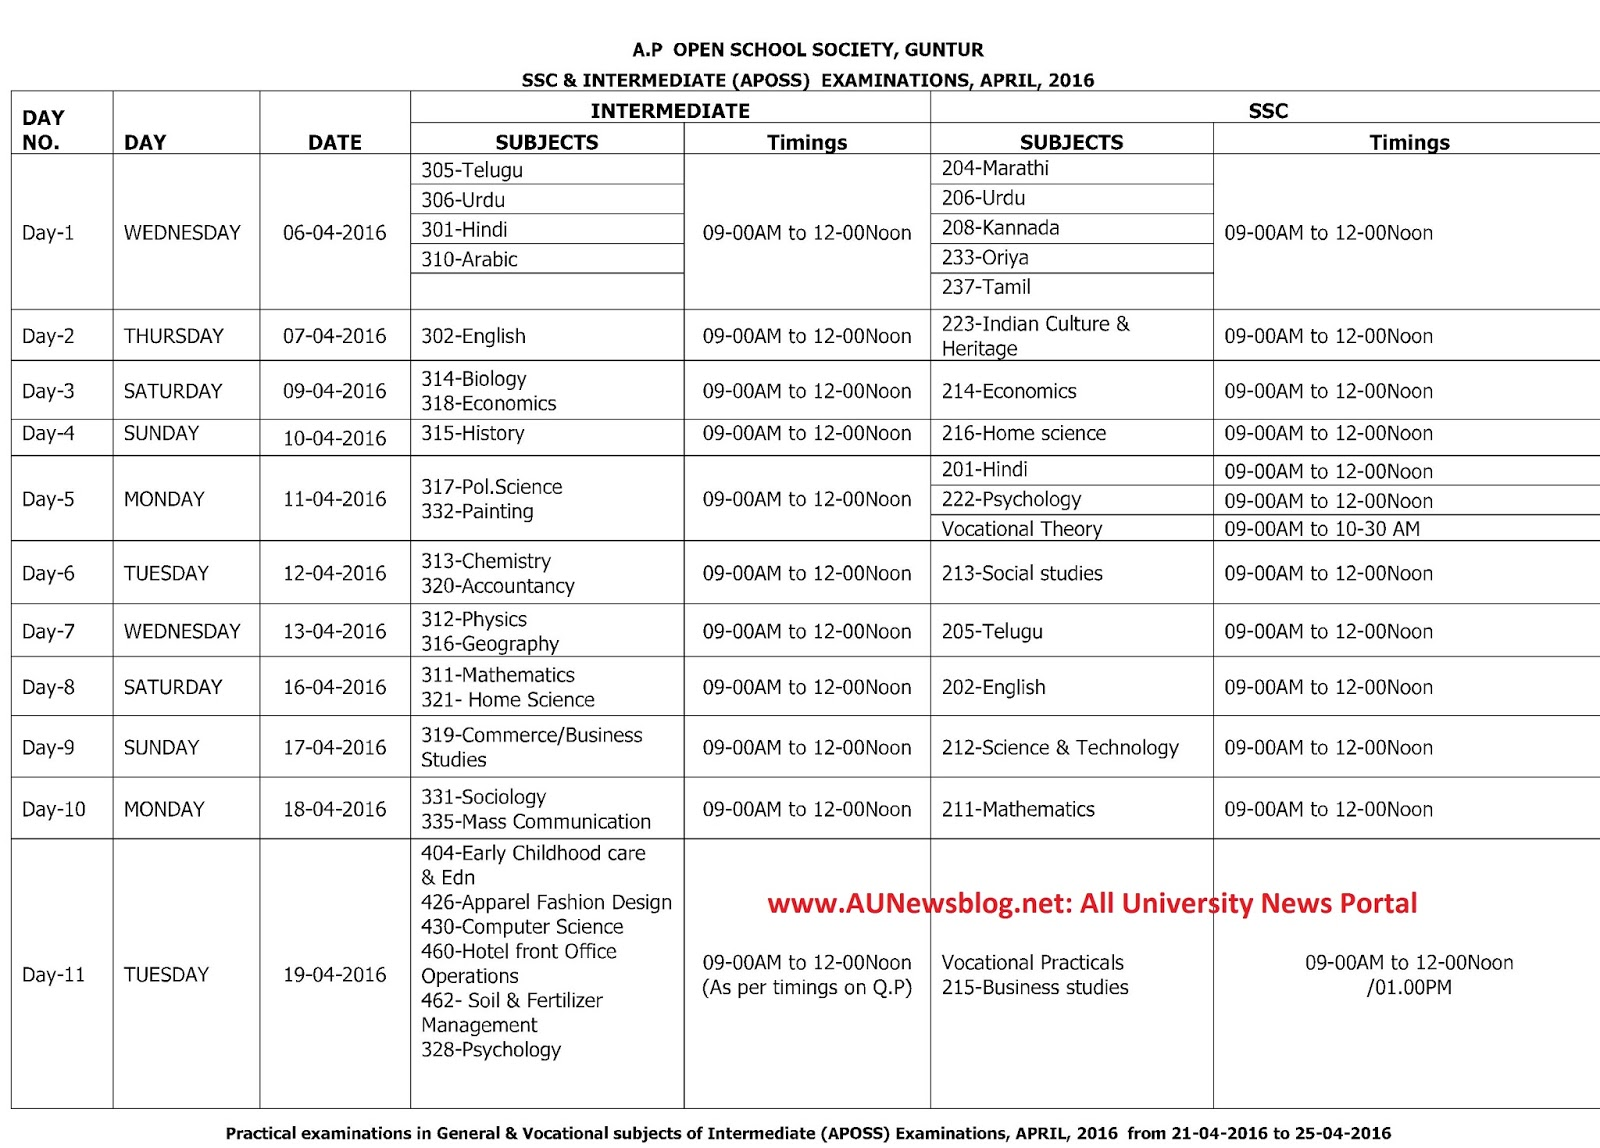 ap open school university ssc exams time table image ap open school university ssc exams 2016 time table image format